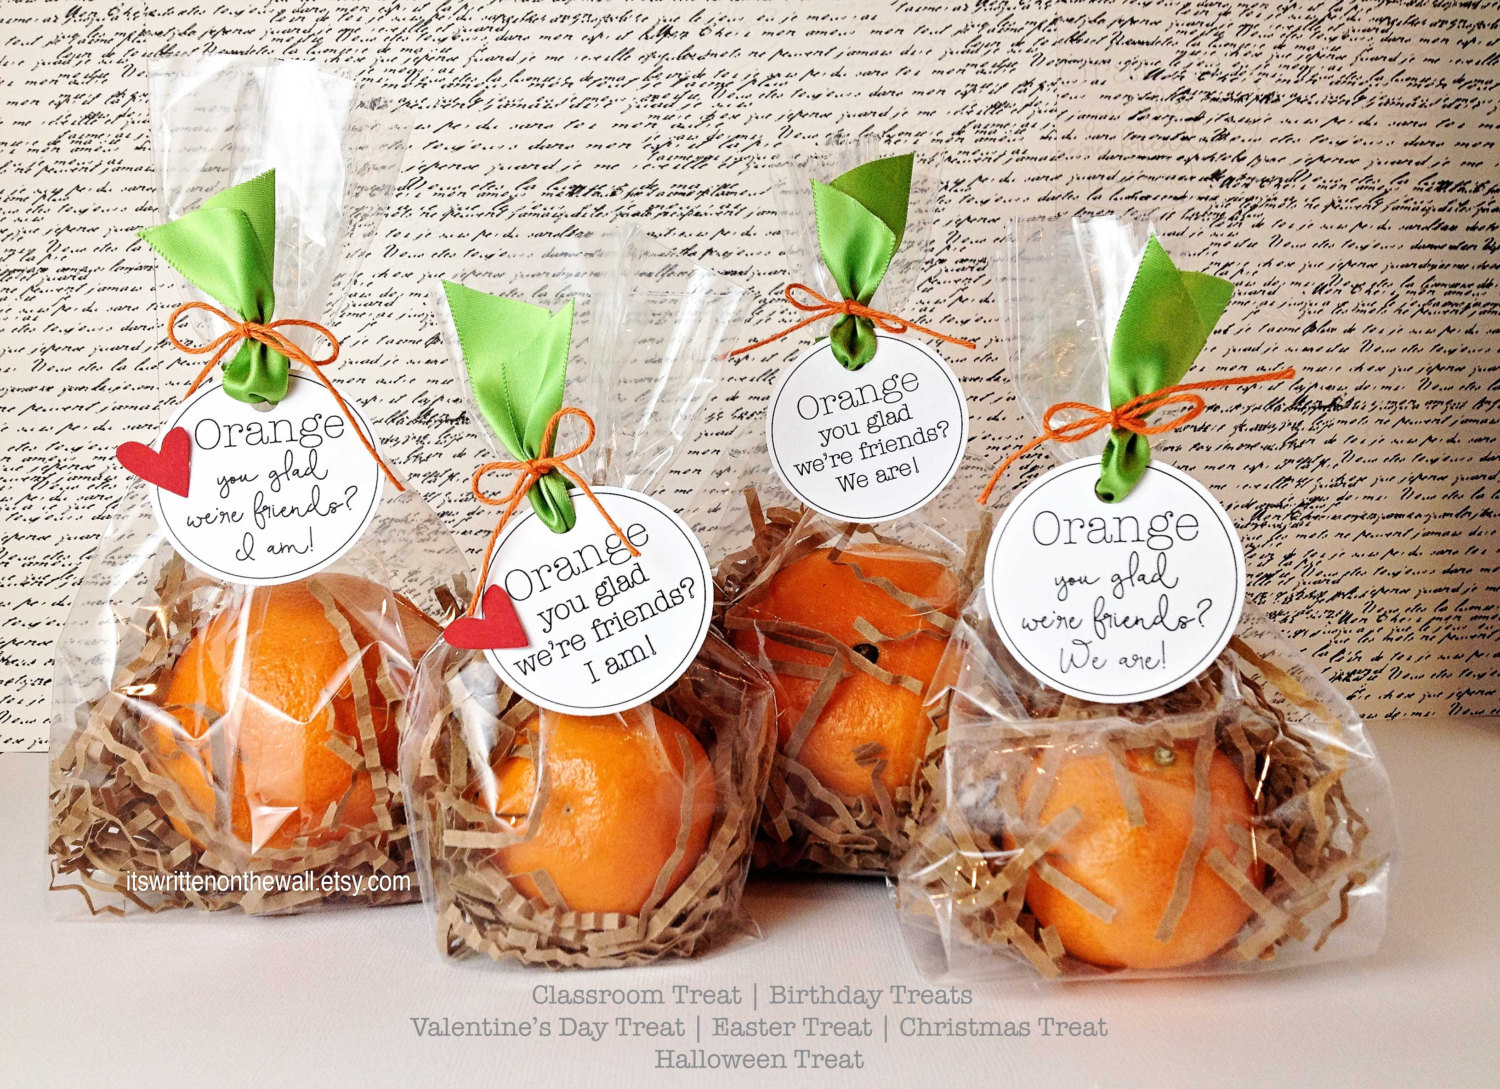 Birthday Party or Classroom Treat-Orange You Glad We're Friends?